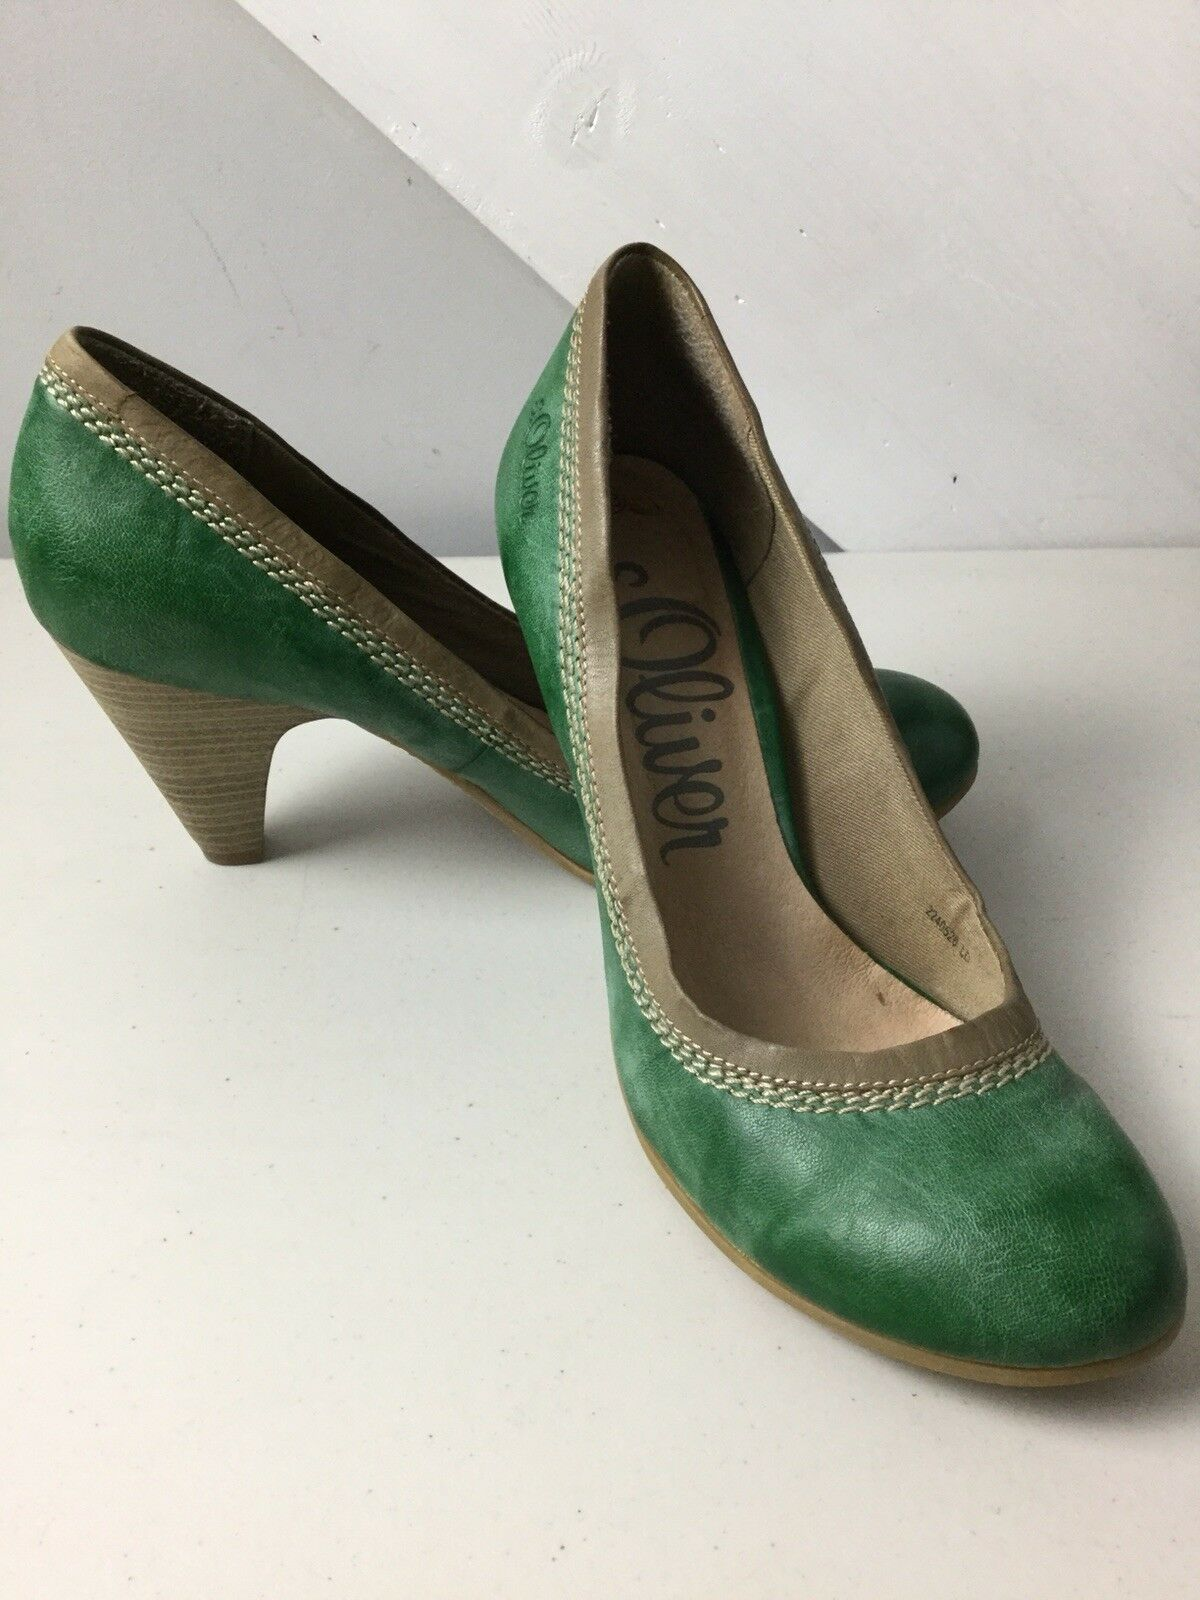 S.Oliver Green Leather Court shoes. Size 5UK. Ex Condition